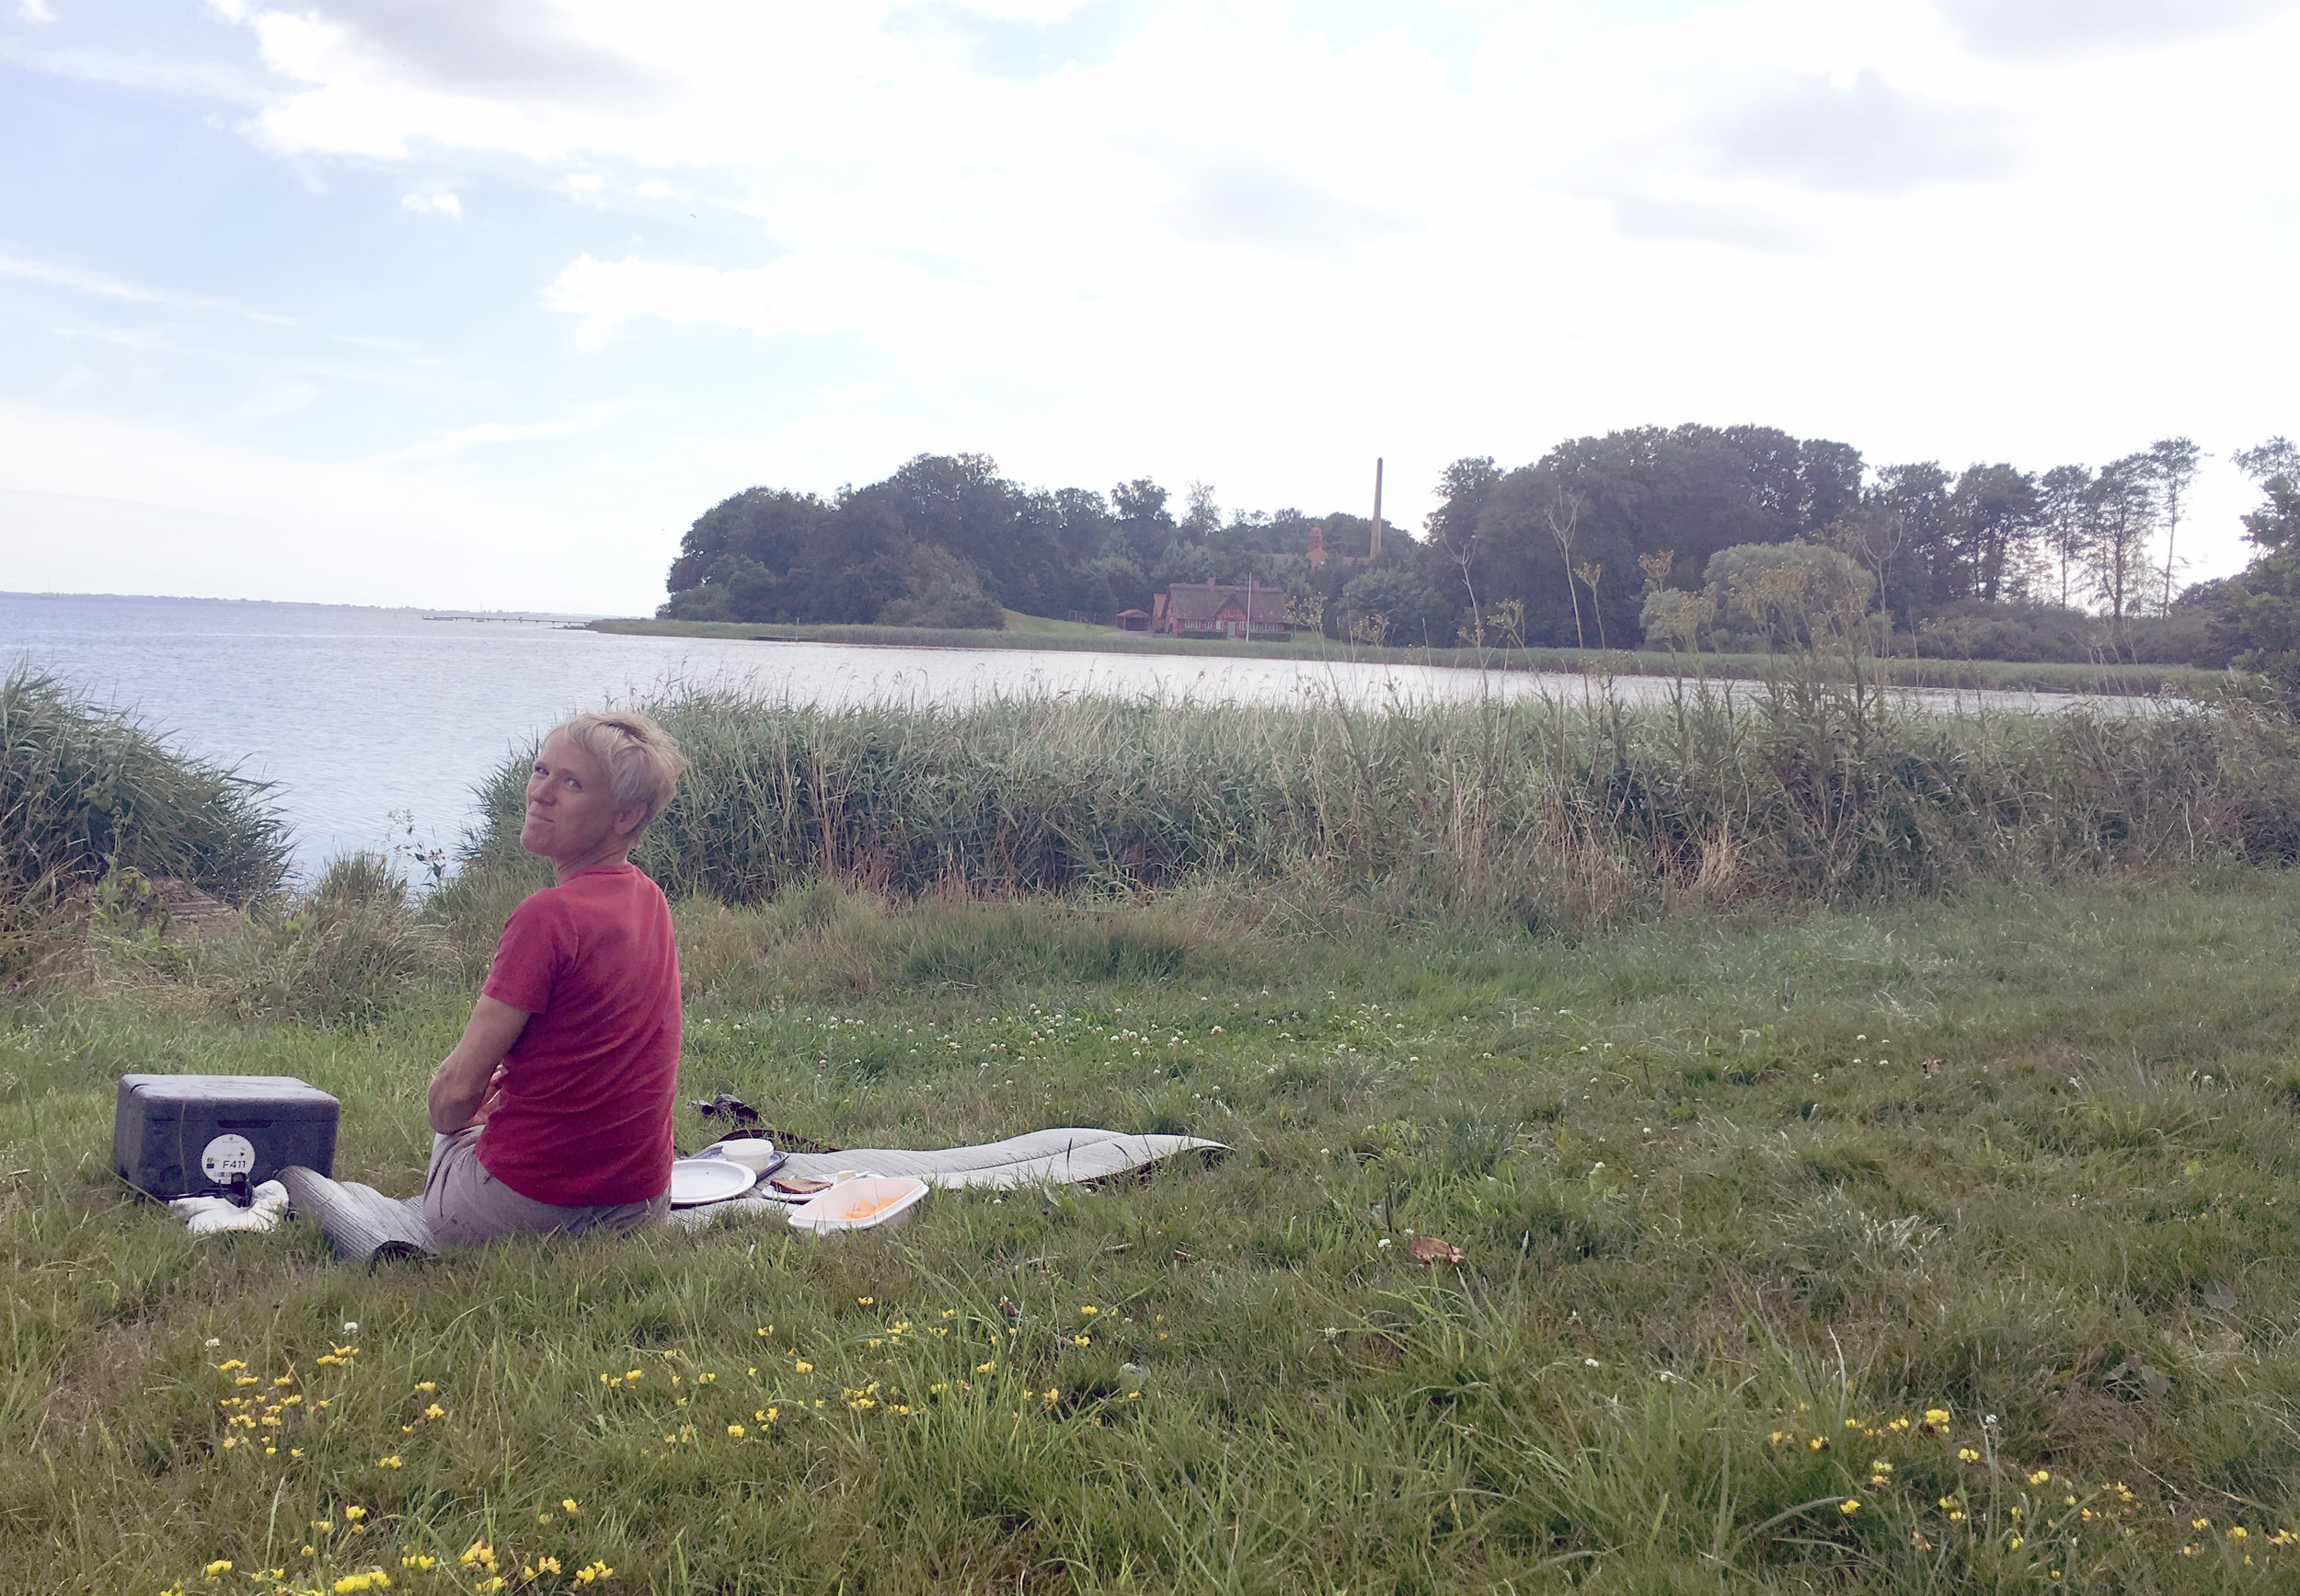 Picnic on the side of the road, next to the Nakkebølle Fjord.